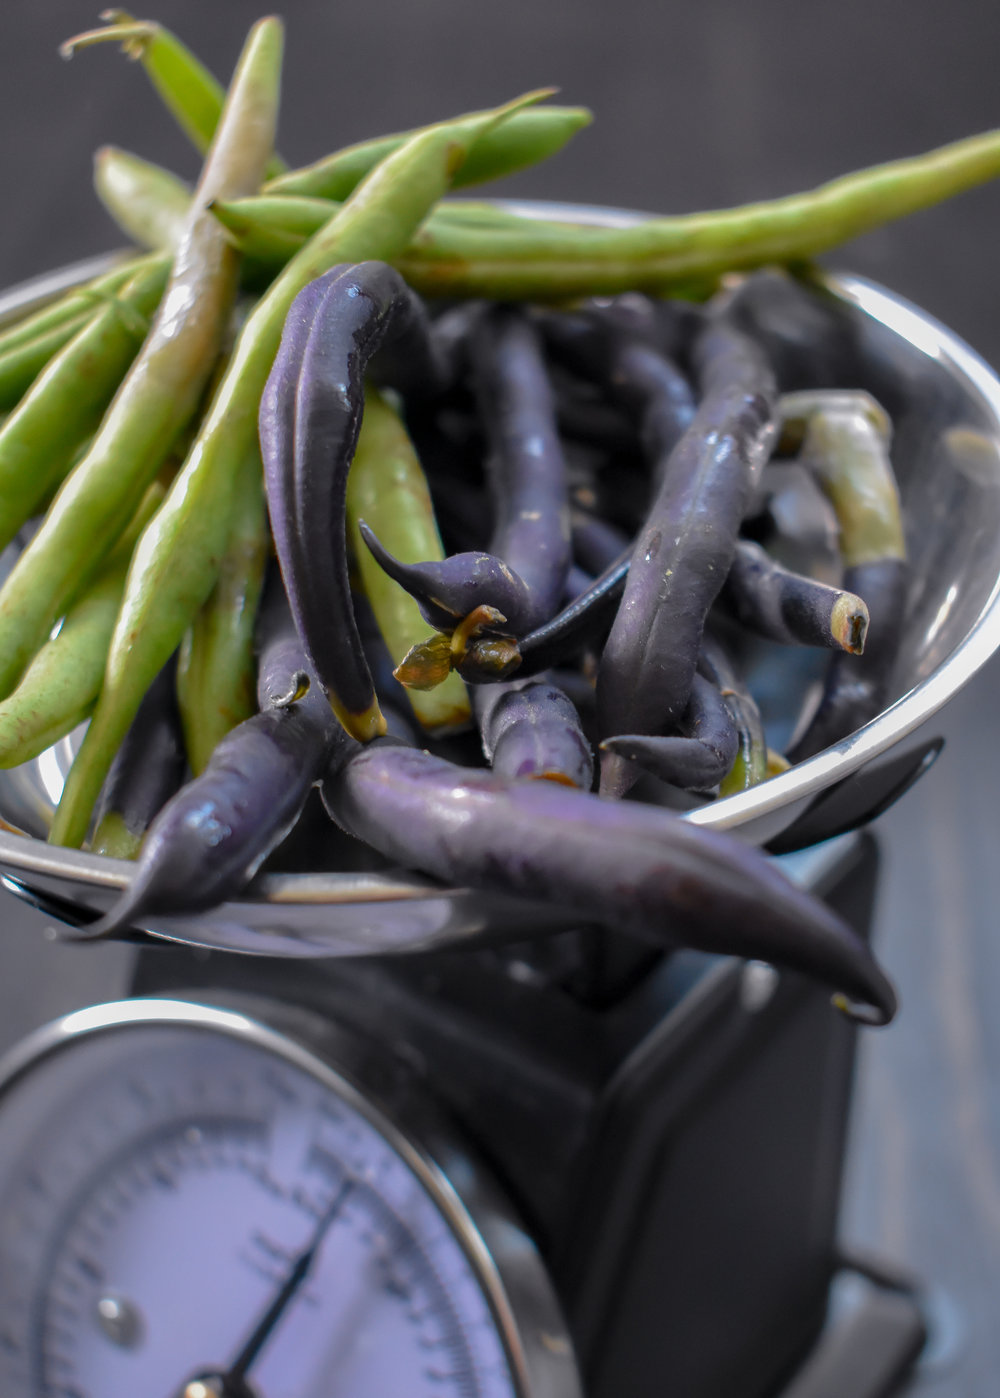 3. Trim the ends ofo your green beans + cut in half. Add to the boiling pot of water and cook for 5 minutes to blanch. Remove, strain, and add to the ice water bath and let it sit for 2-3 minutes. Strain and set aside.